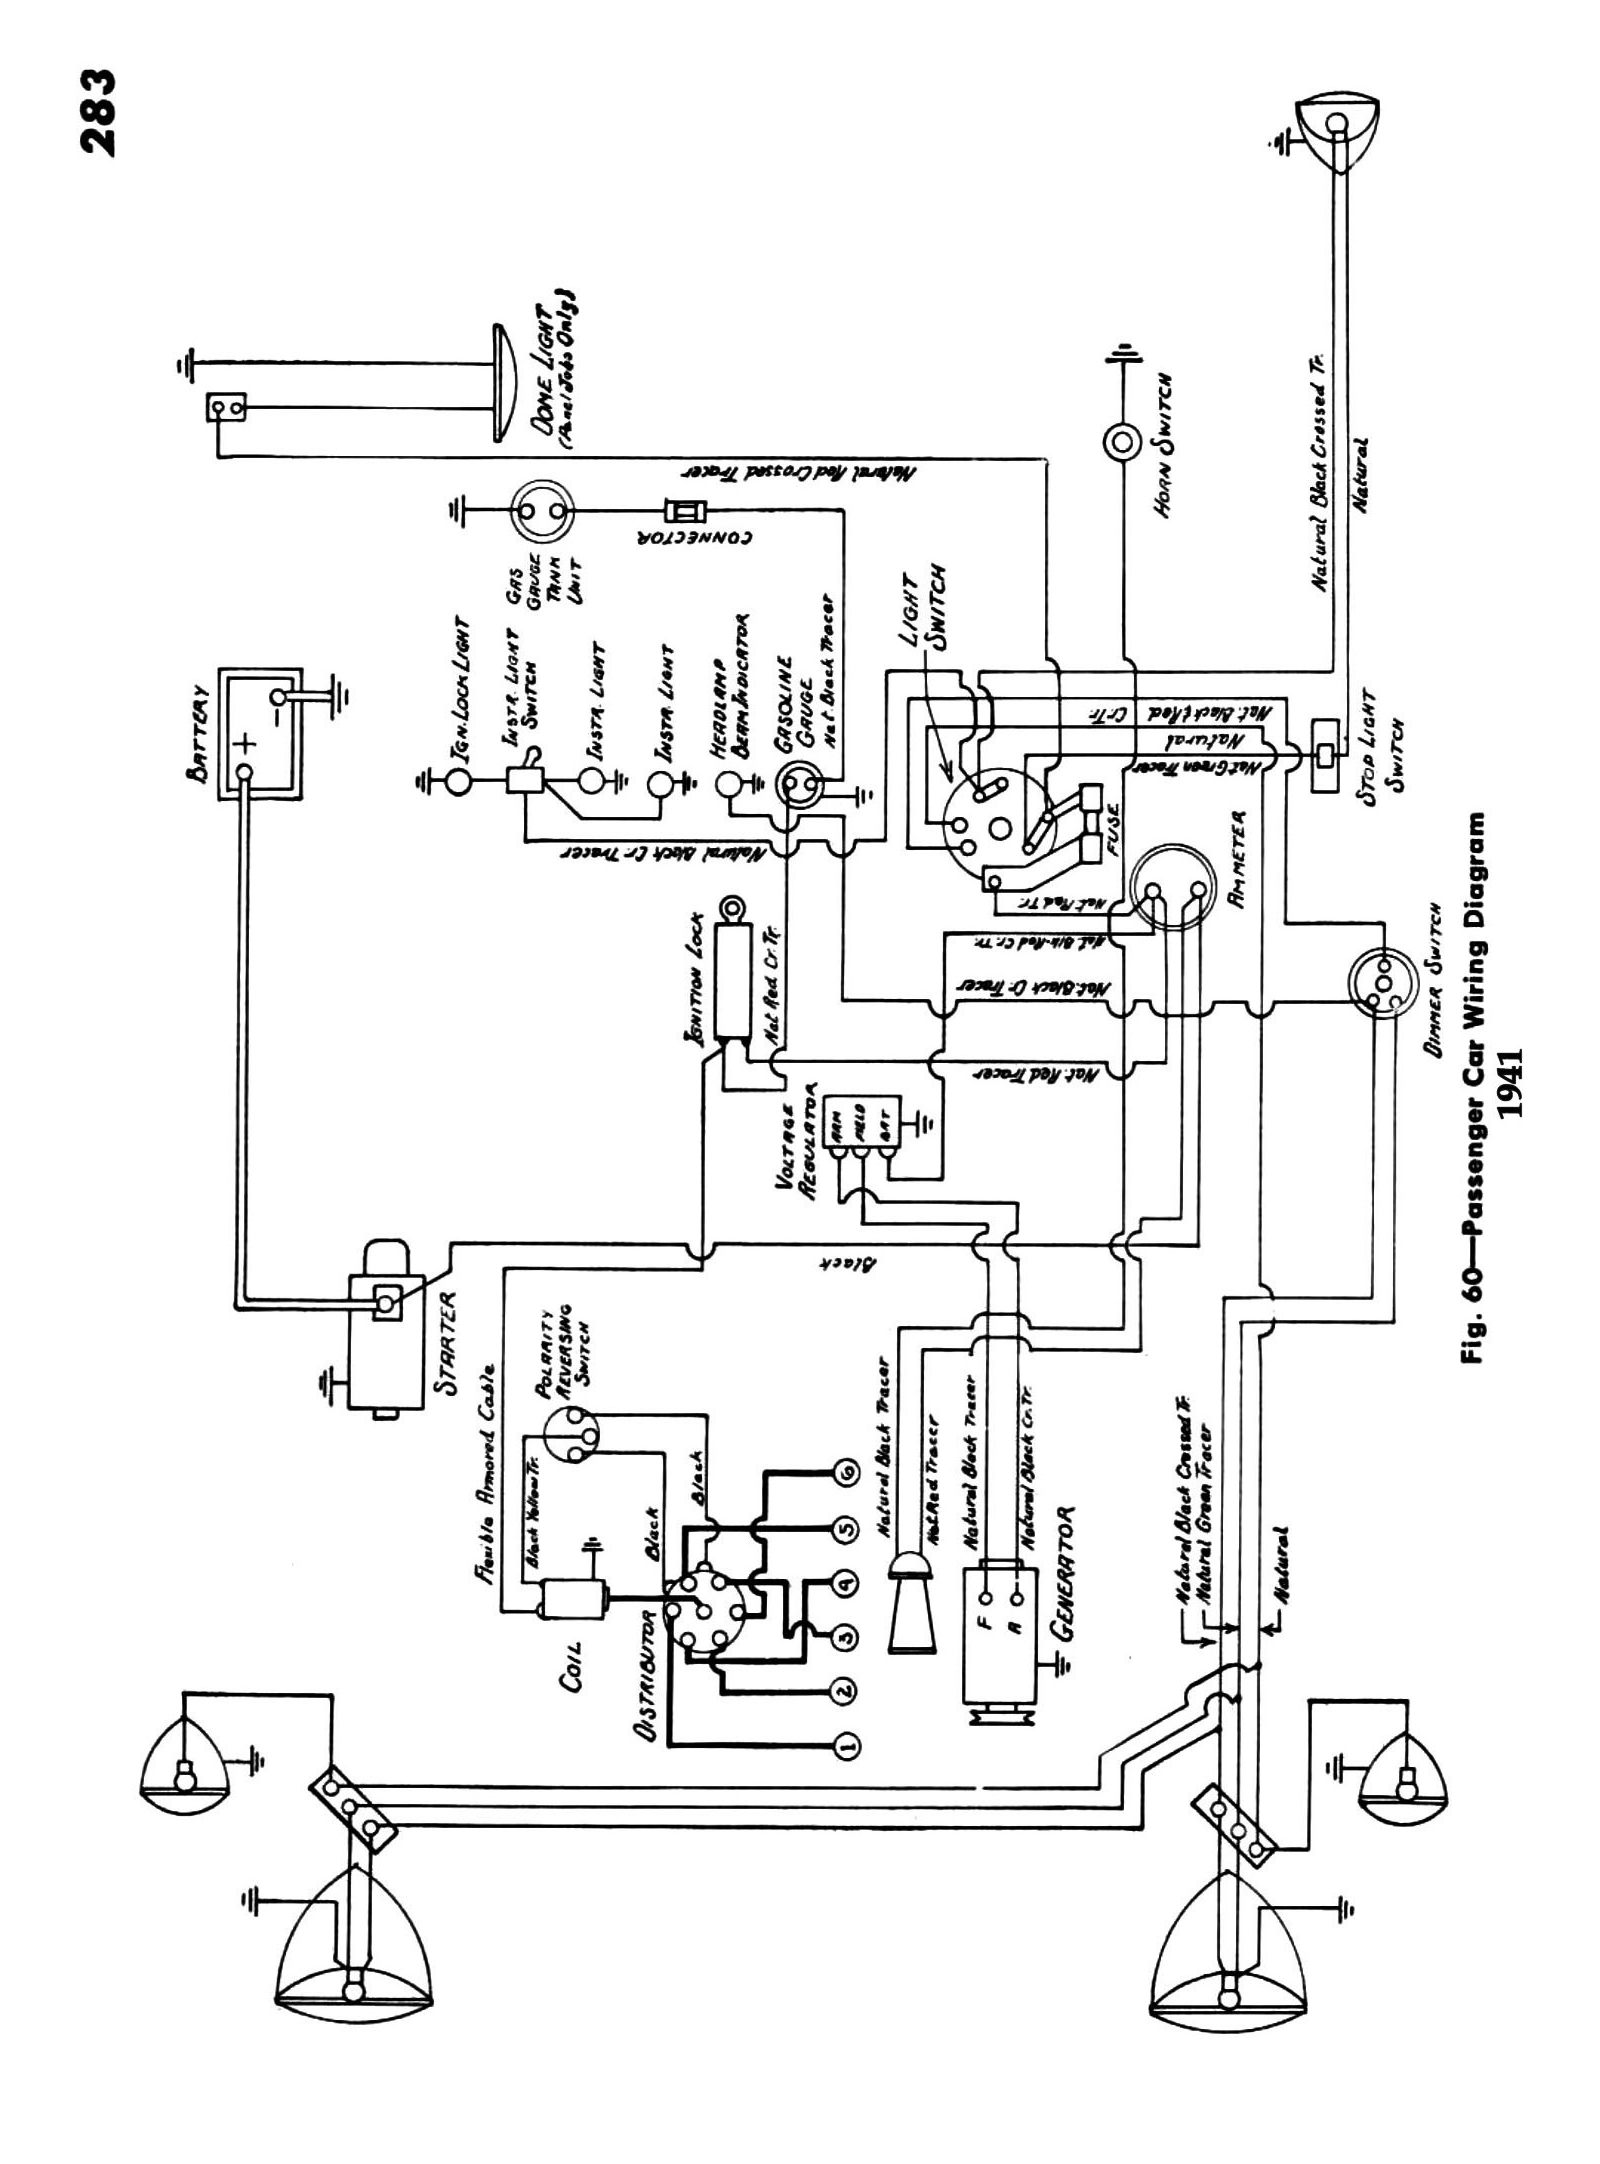 41csm283 chevy wiring diagrams chevrolet truck wiring diagrams free at soozxer.org